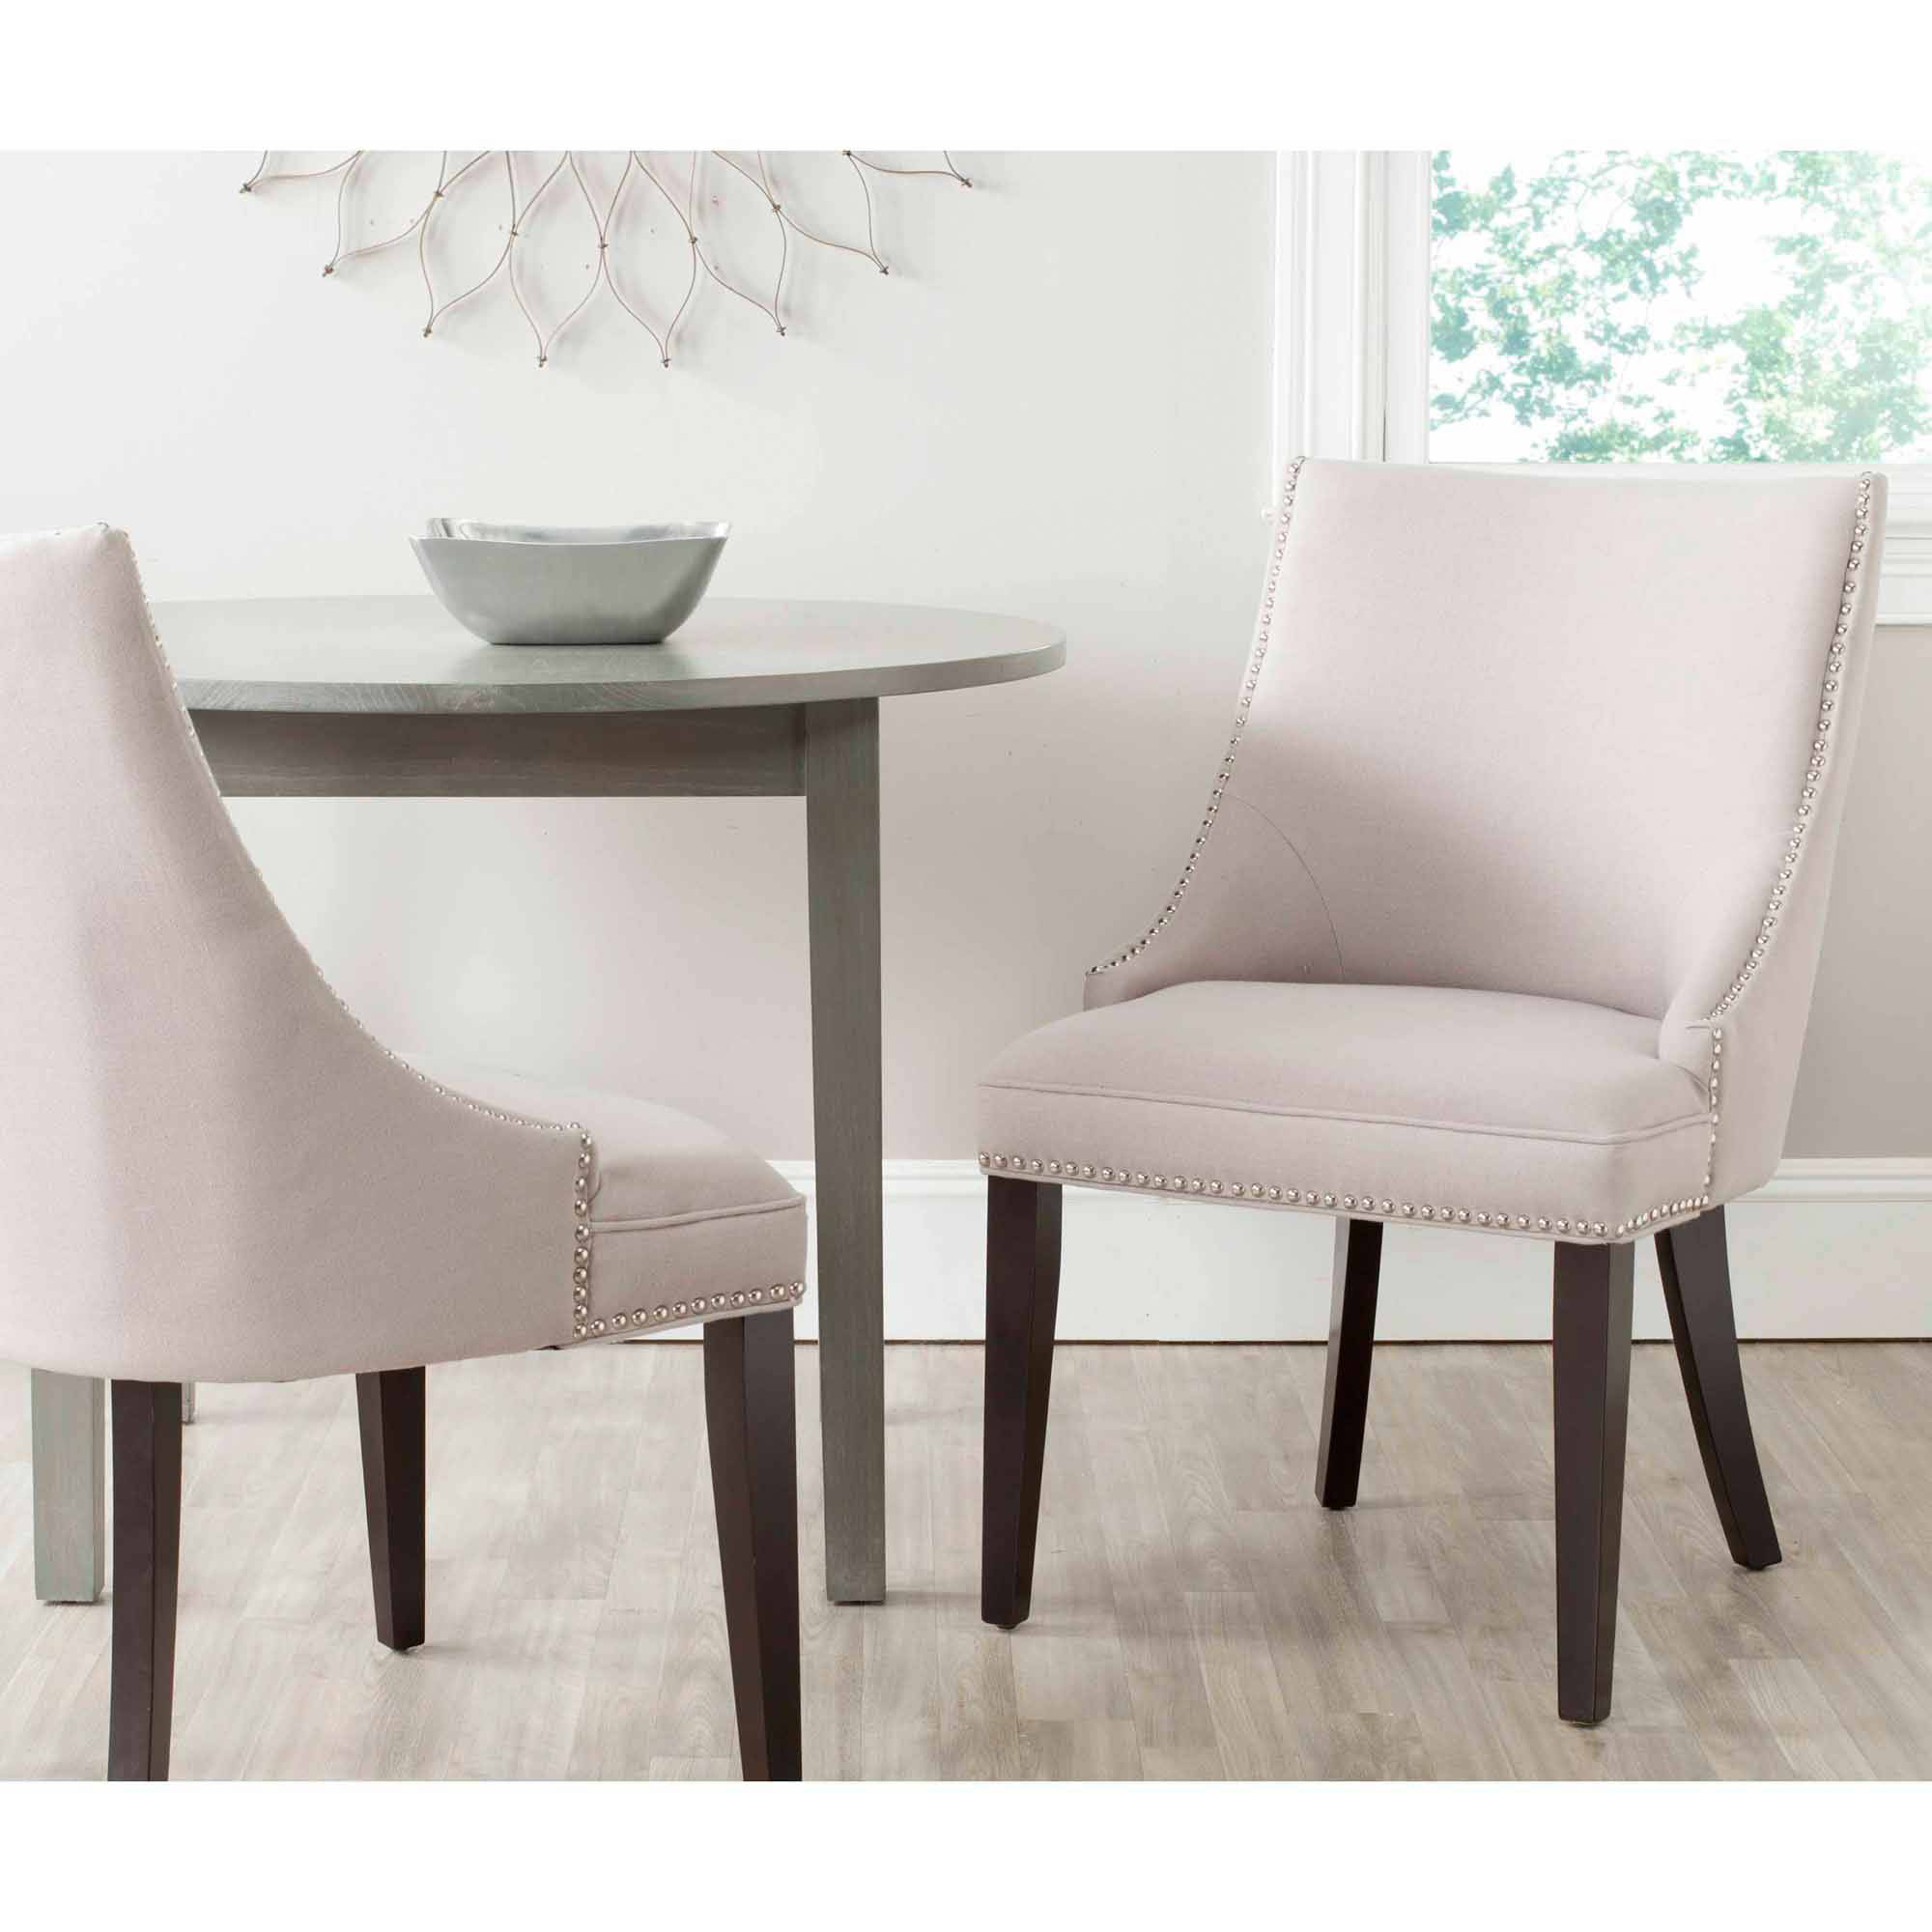 safavieh sinclair ring side chair owl for toddler lester dining chair, set of 2 - walmart.com